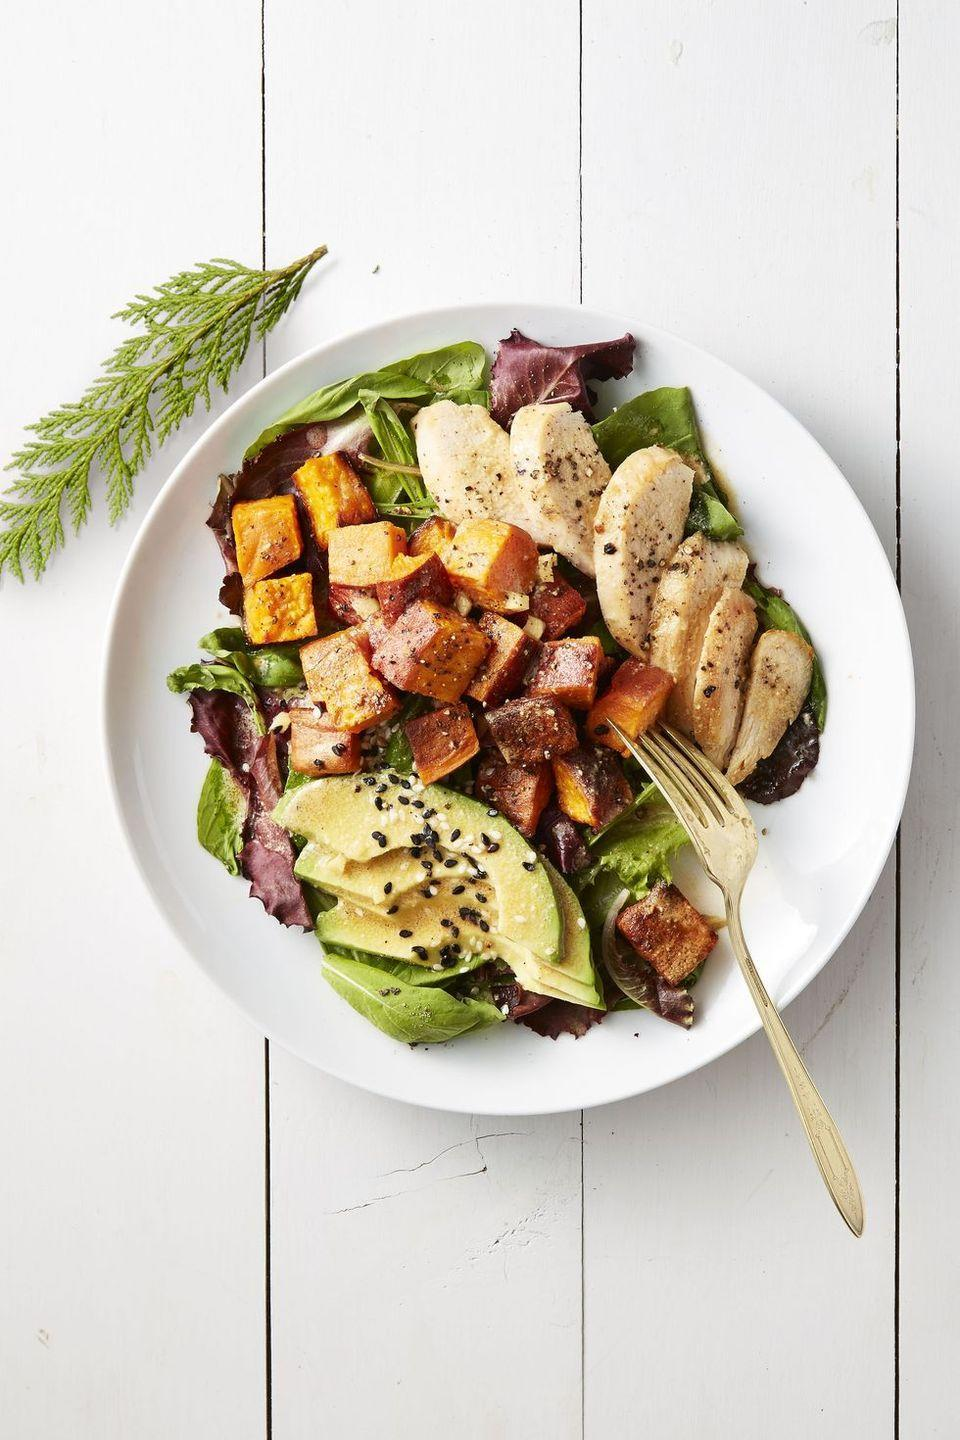 """<p>Lighten up dinner time with a nutrient-packed salad, topped with caramelized roasted sweet potatoes and time-saving rotisserie chicken.</p><p><em><a href=""""https://www.goodhousekeeping.com/food-recipes/easy/a42180/roasted-sweet-potato-and-chicken-salad-recipe/"""" rel=""""nofollow noopener"""" target=""""_blank"""" data-ylk=""""slk:Get the recipe for Roasted Sweet Potato and Chicken Salad »"""" class=""""link rapid-noclick-resp"""">Get the recipe for Roasted Sweet Potato and Chicken Salad »</a></em></p>"""